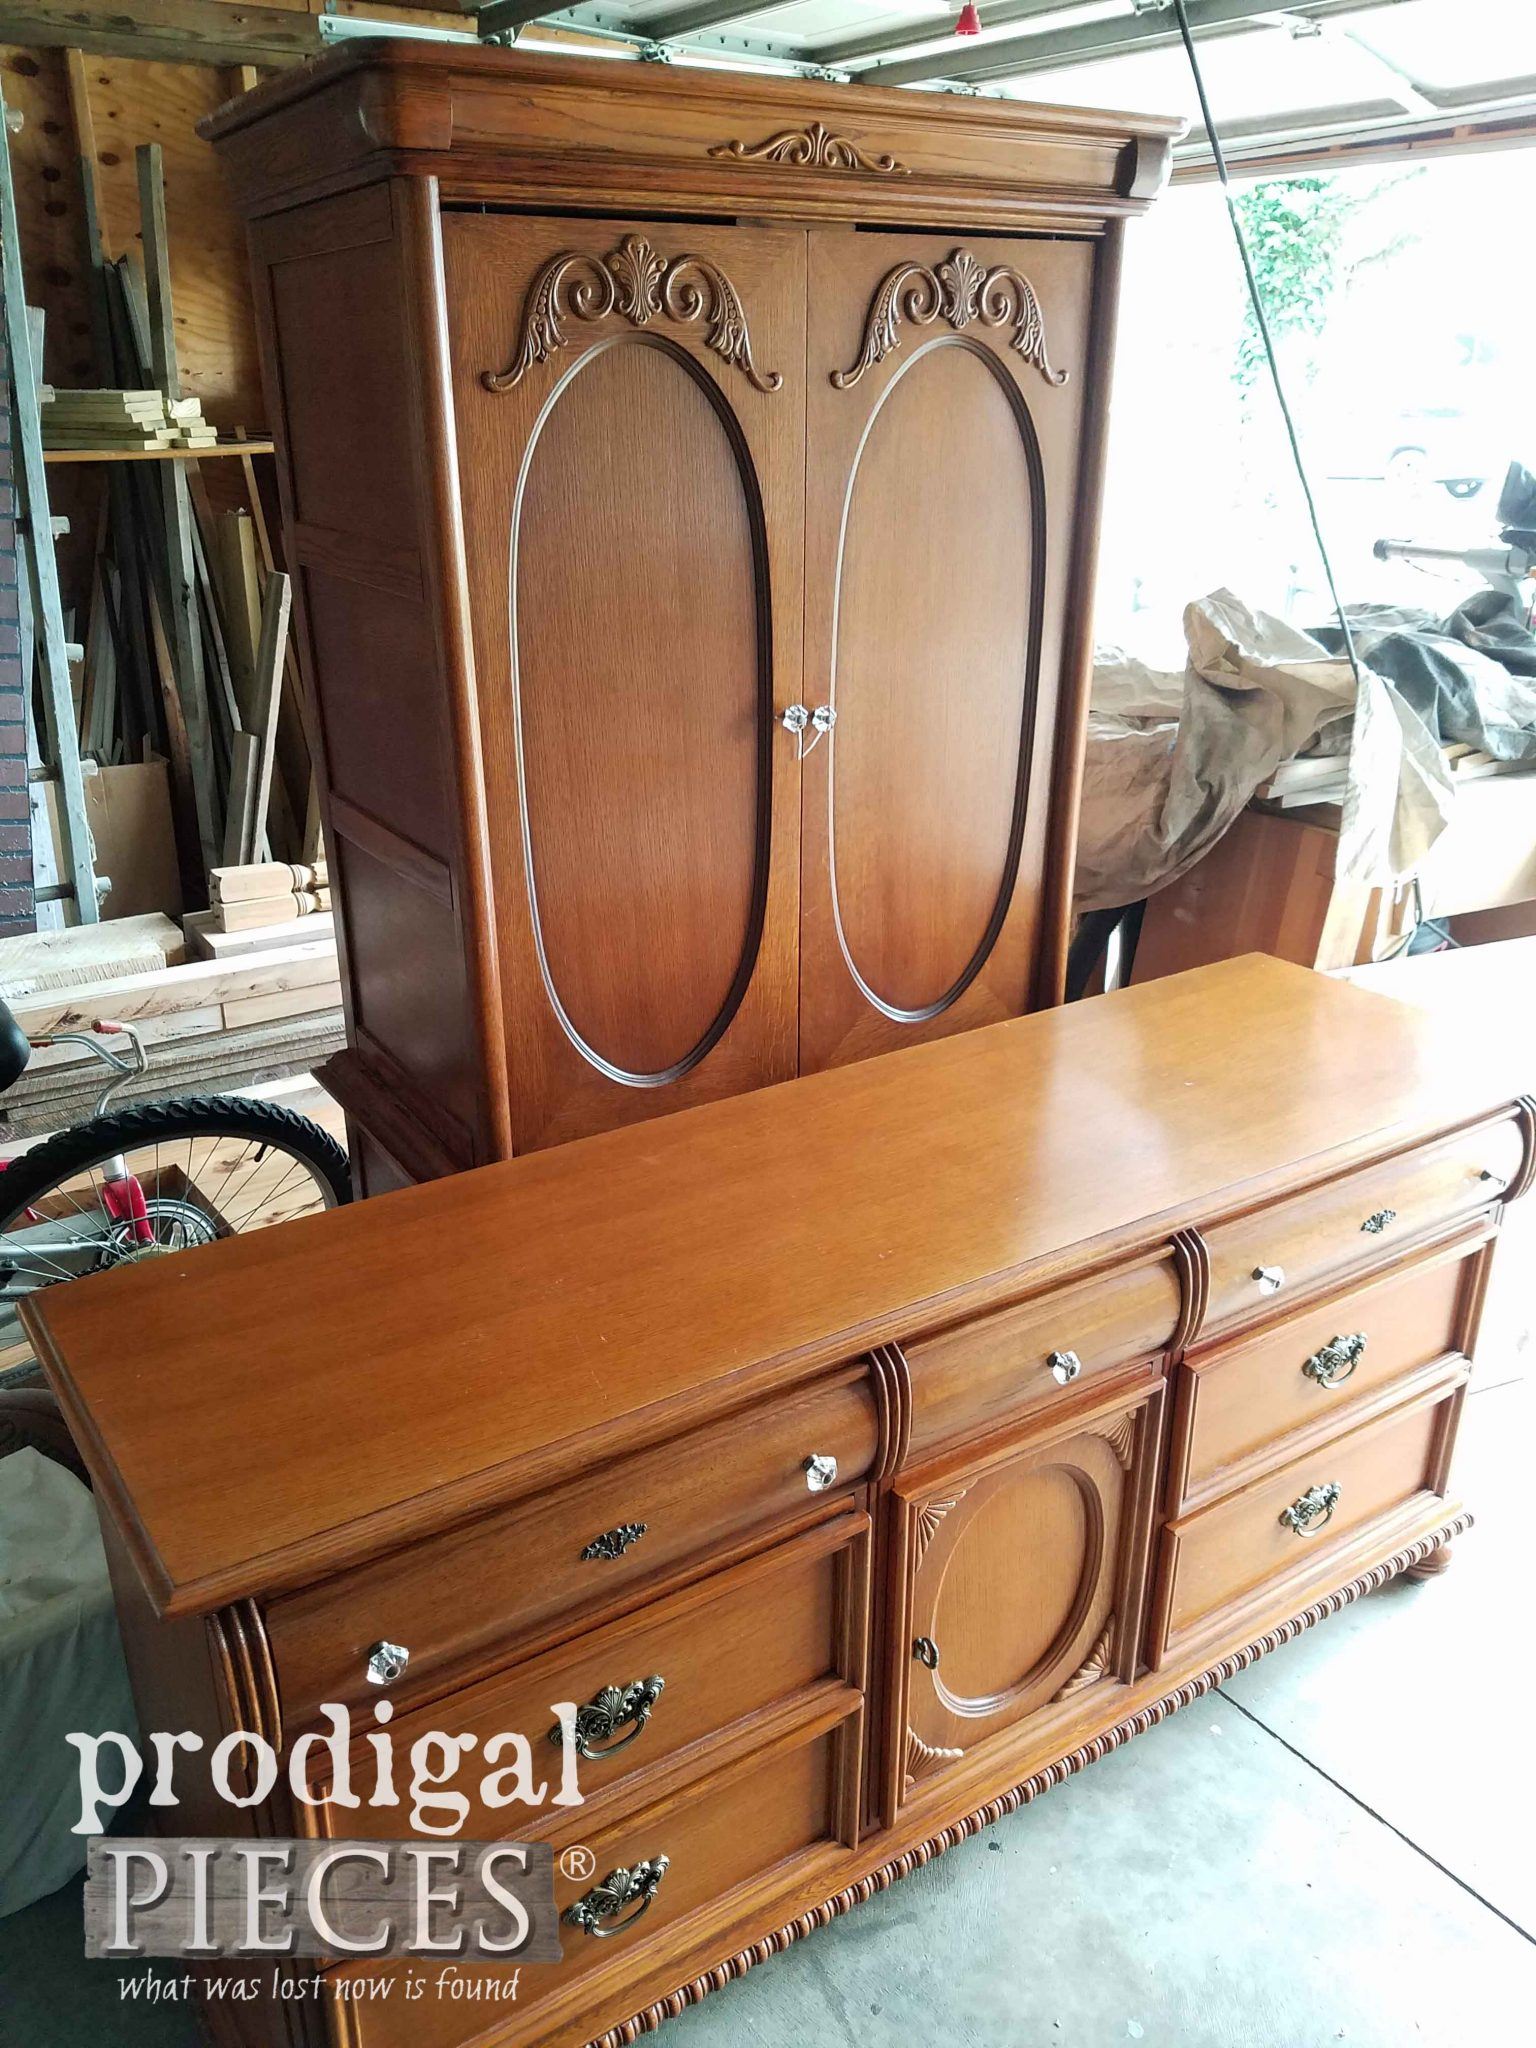 Vintage Lexington Bedroom Set by Prodigal Pieces | prodigalpieces.com